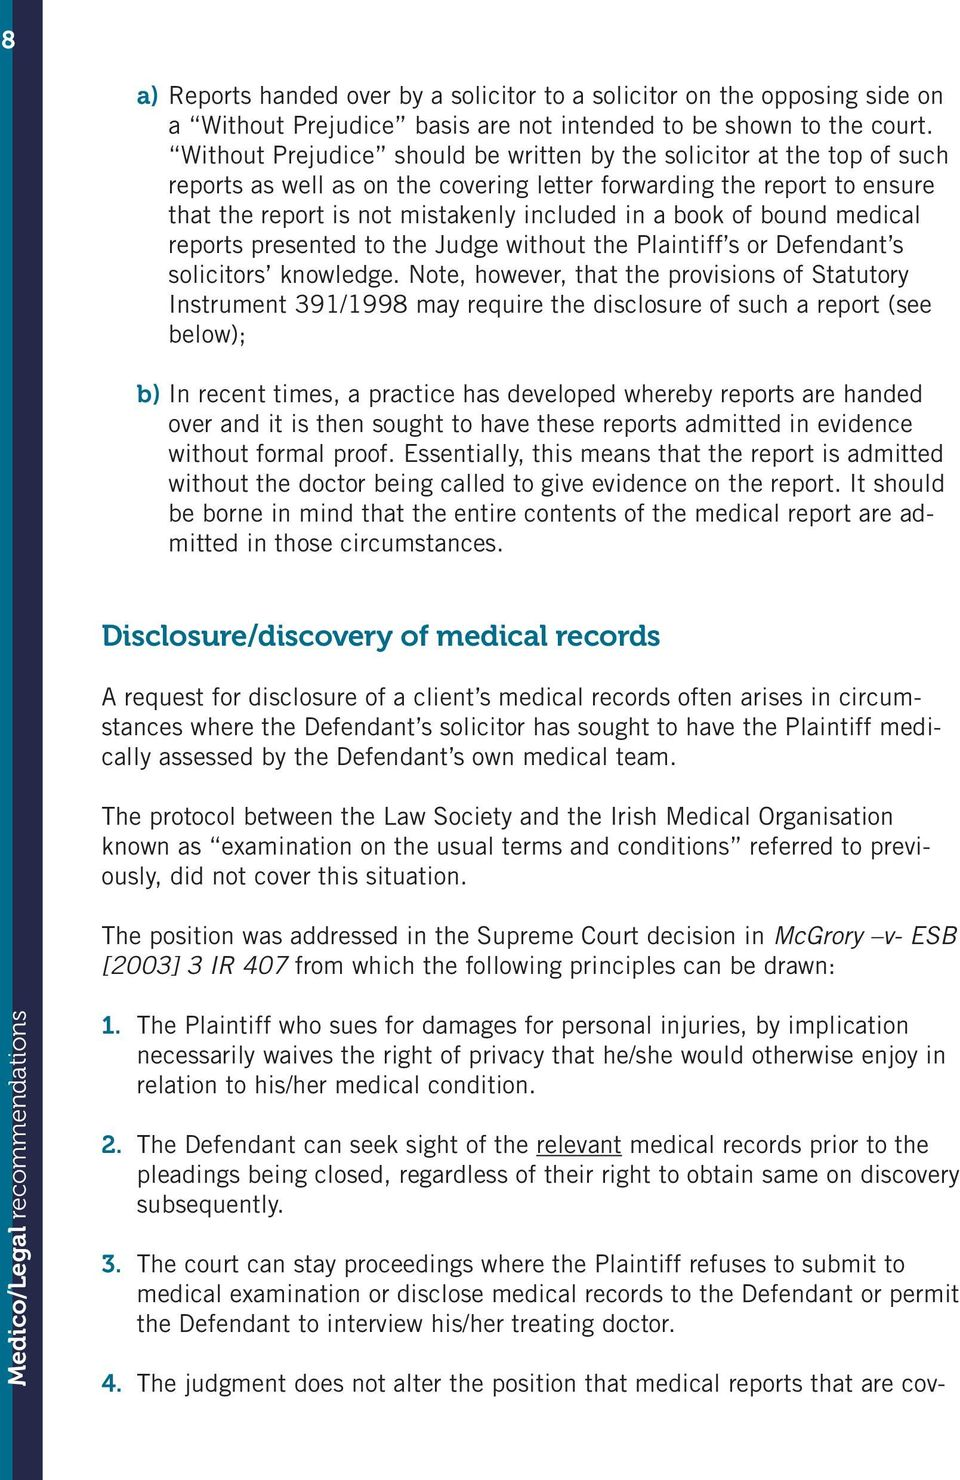 of bound medical reports presented to the Judge without the Plaintiff s or Defendant s solicitors knowledge.